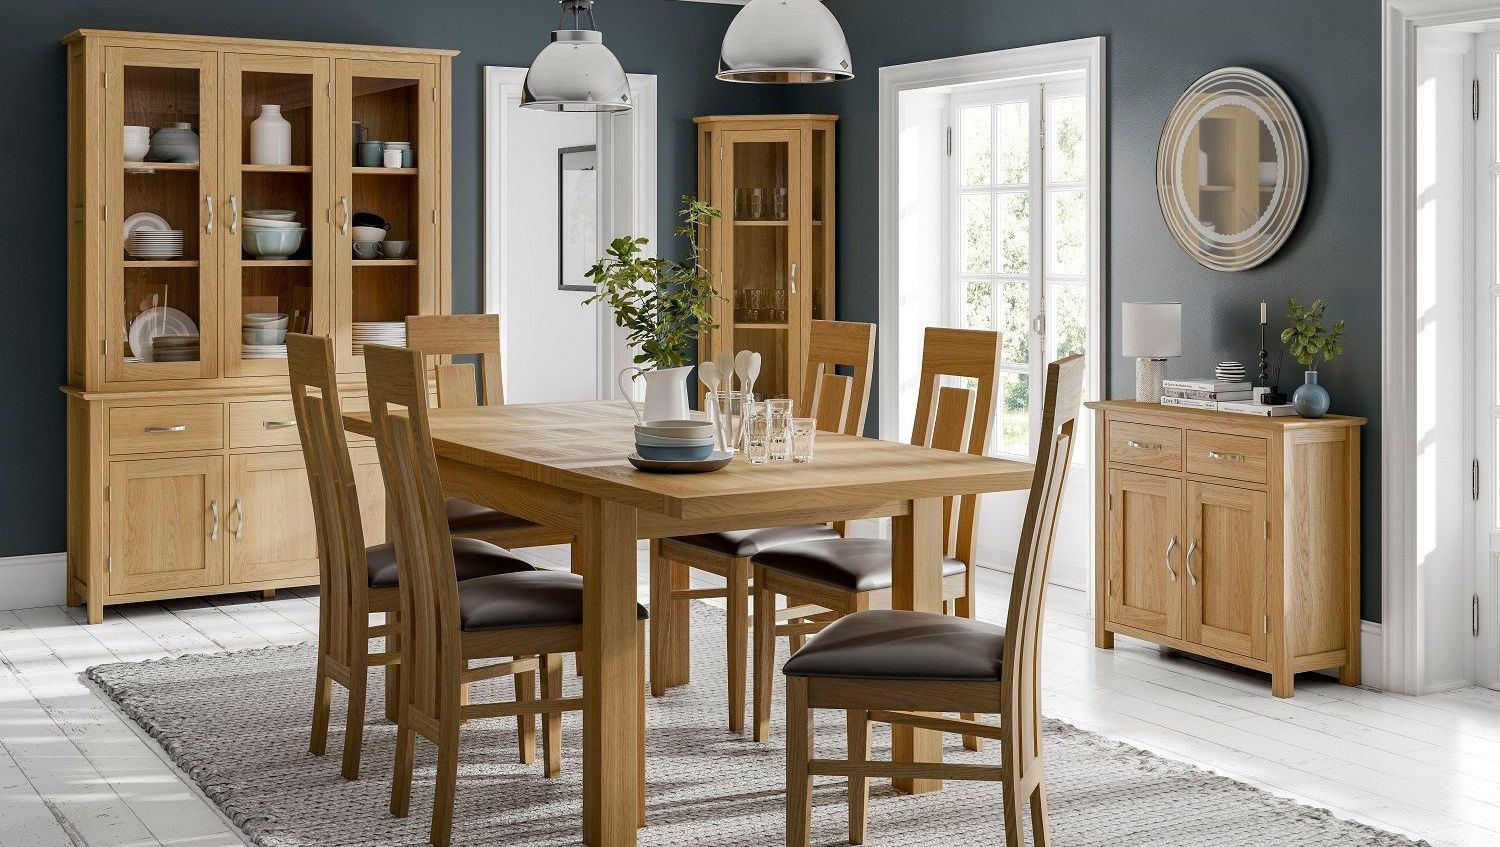 NEW OAK DINING